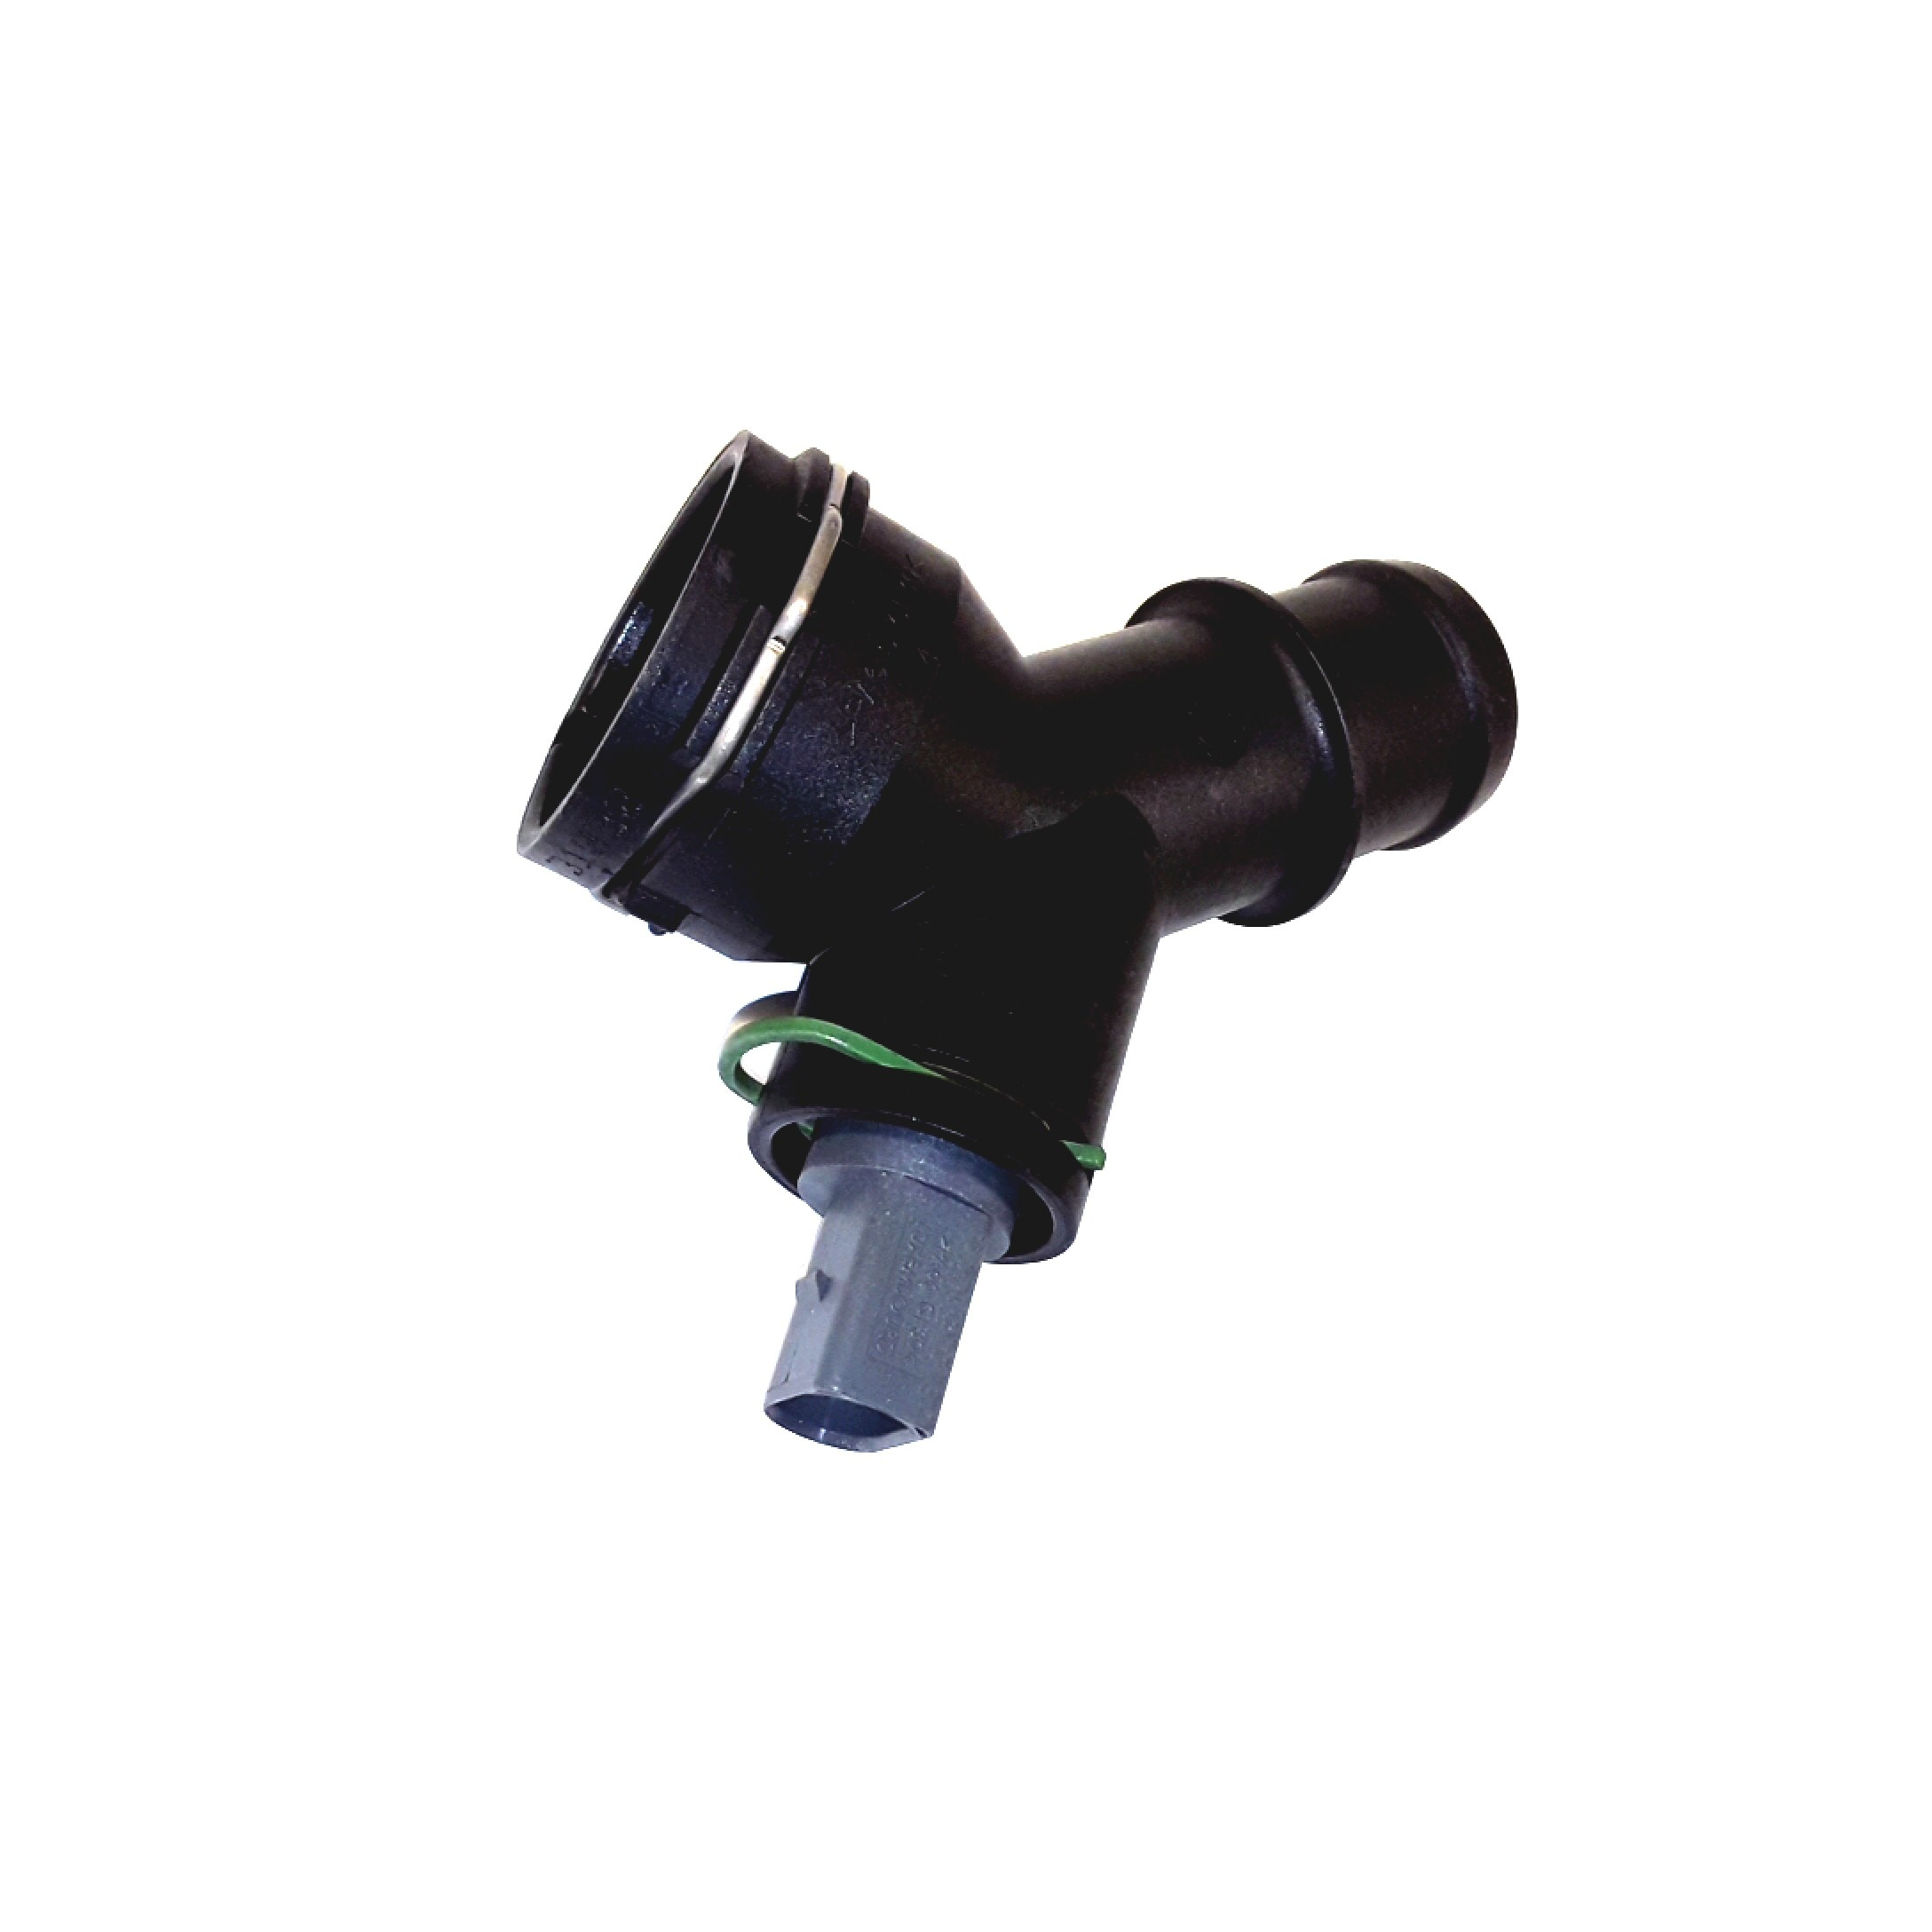 Volkswagen Jetta 2 5l 5 Cylinder Quick Coupling Piece For Vehicles With Air Condit  Connection